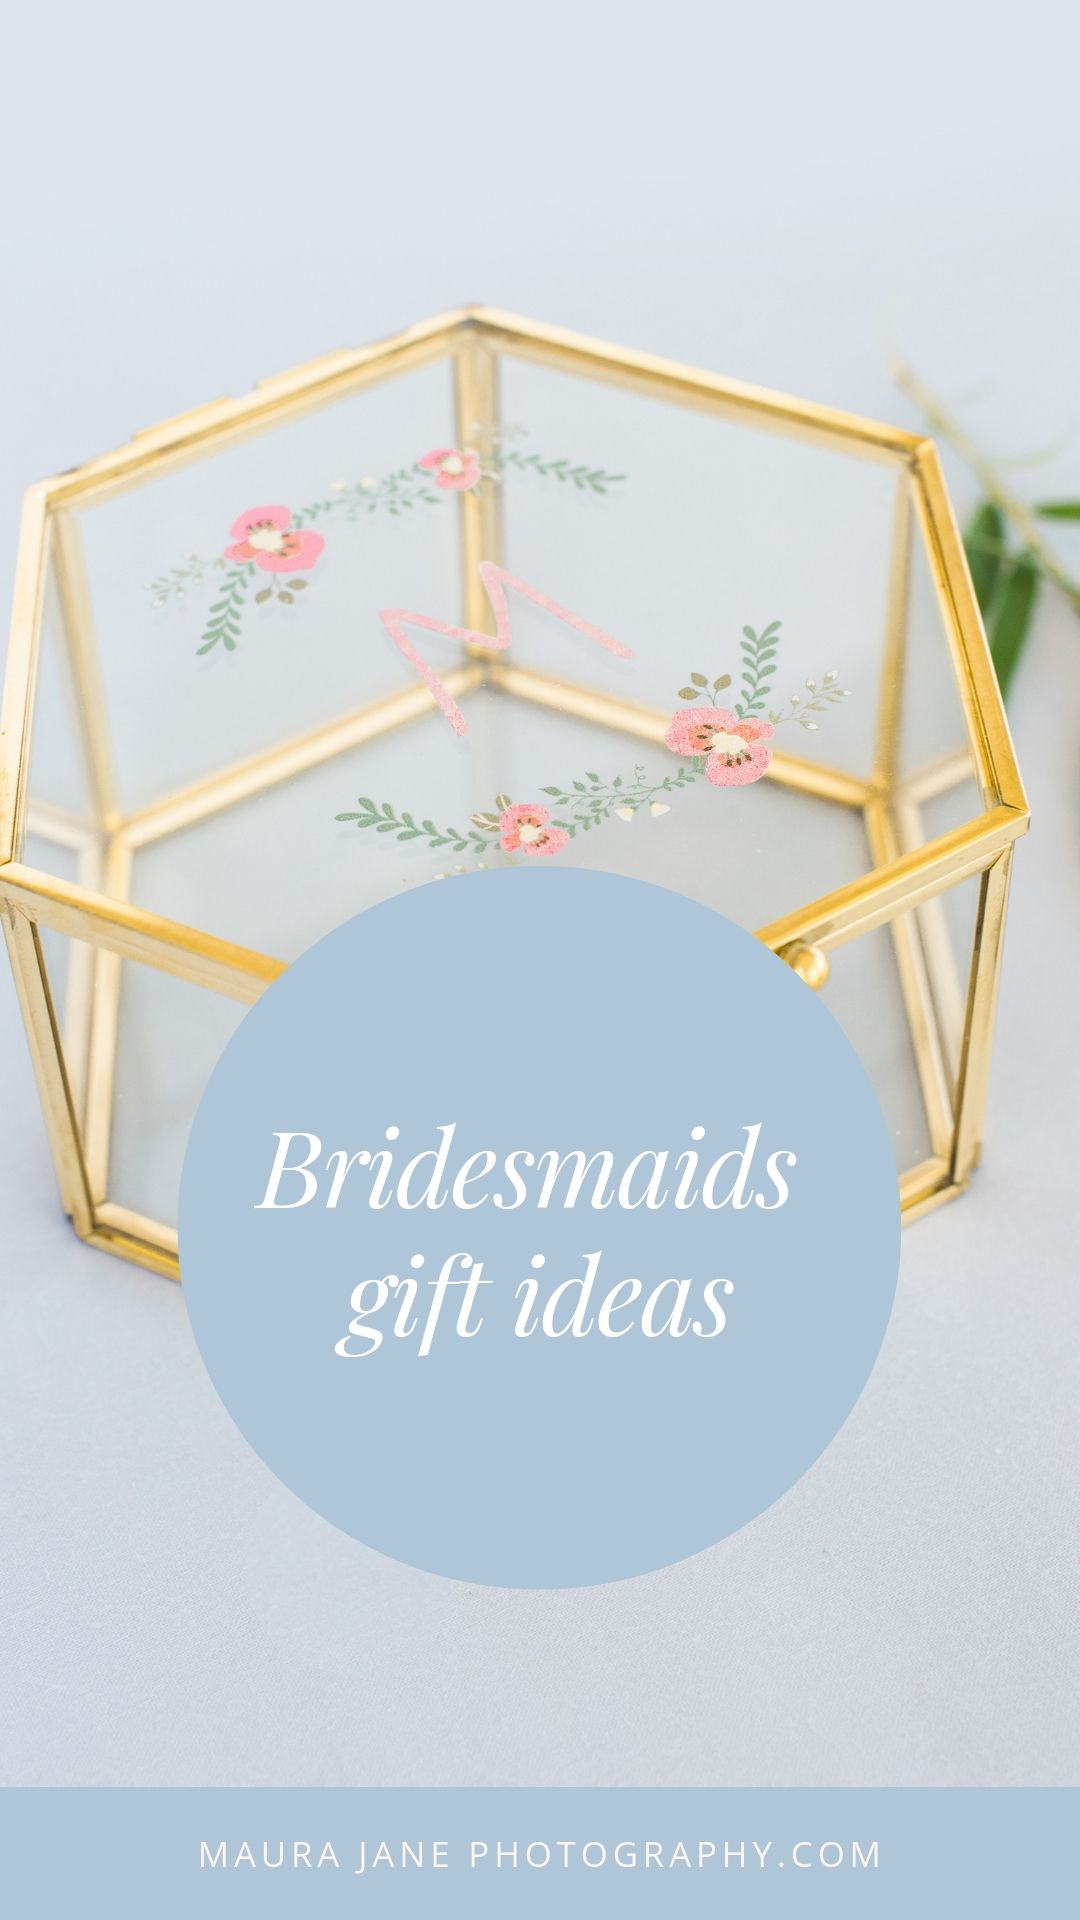 Bridesmaids gifts ideas wedding day gifts bride gifts